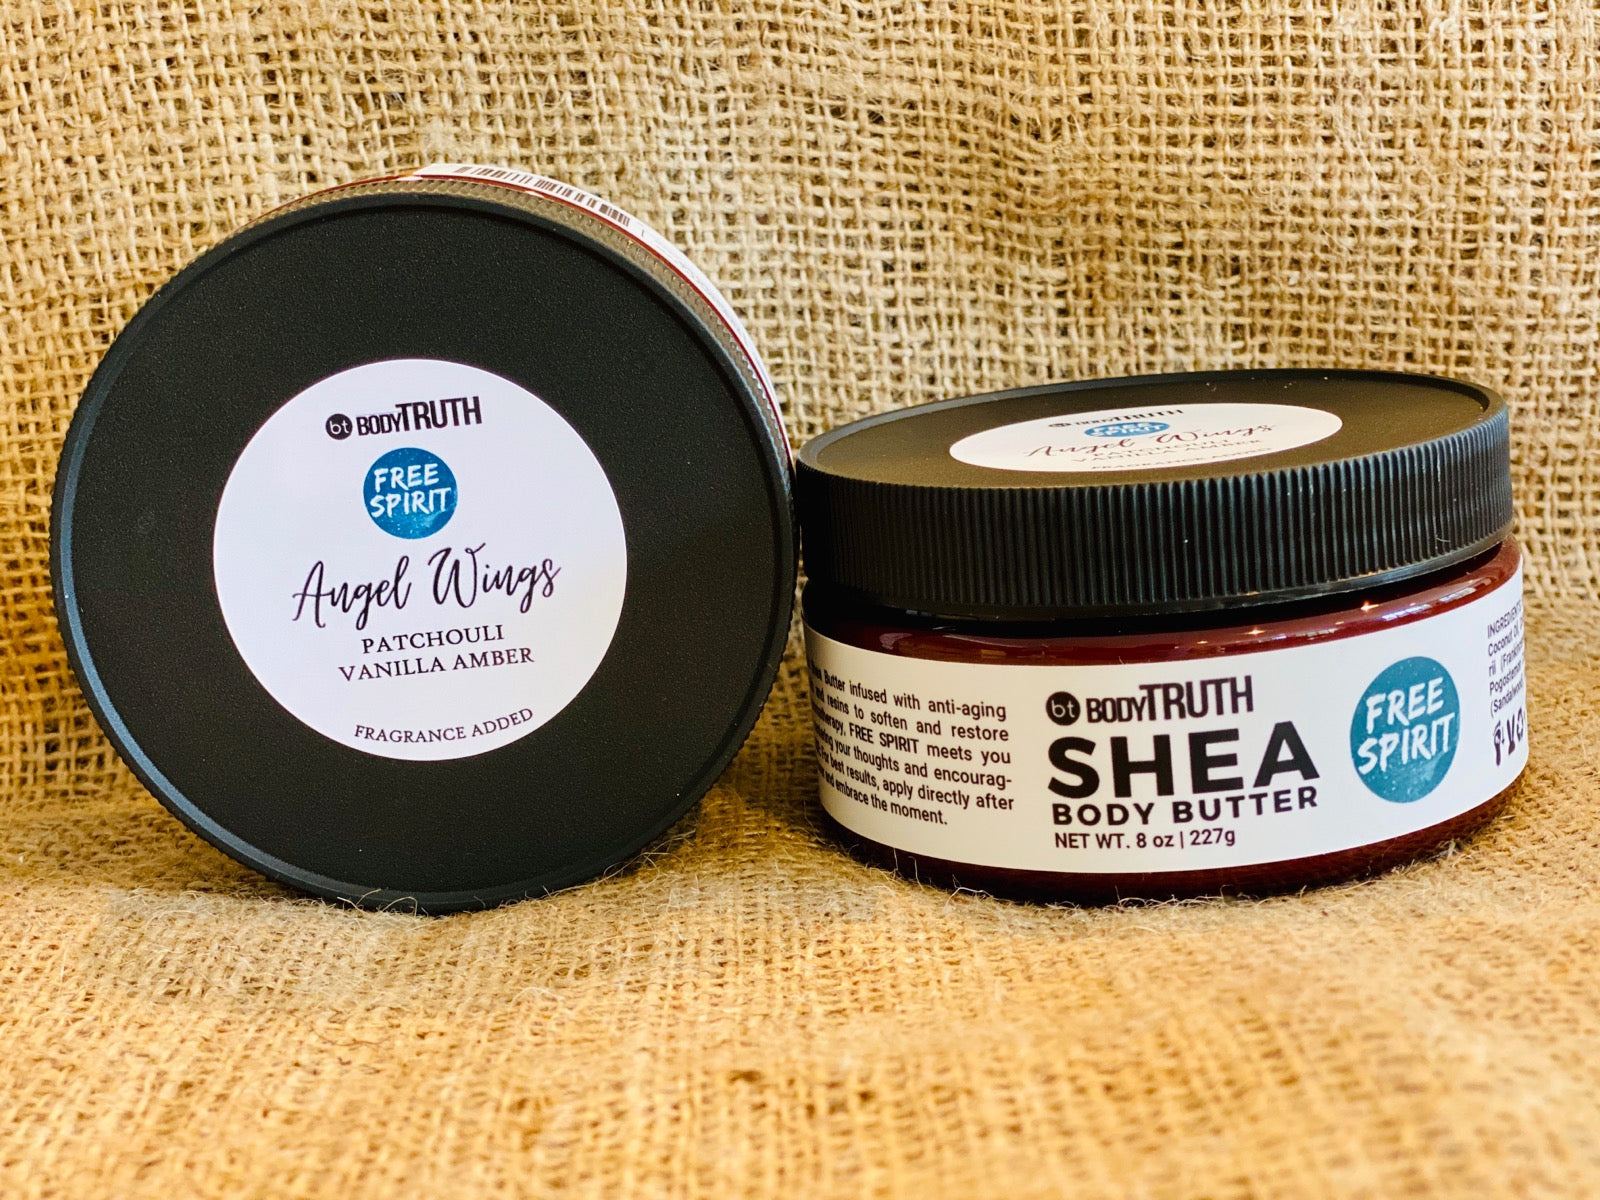 FREE SPIRIT, Angel Wings - Shea Butter - Bodytruth Soap Apothecary